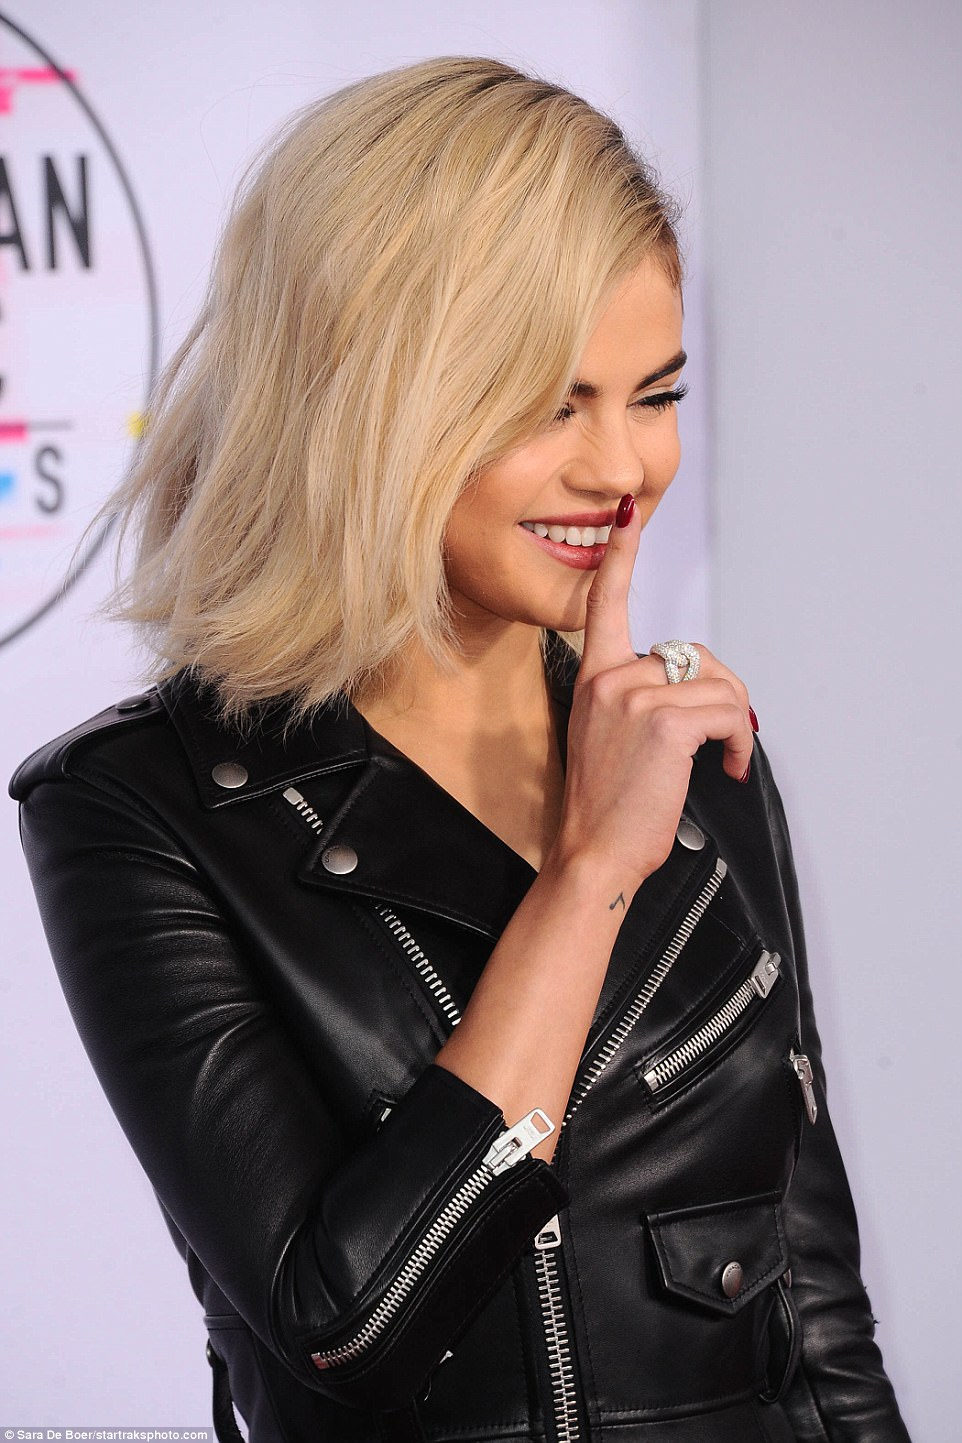 Selena Gomez debuts newly dyed blonde hair at the American Music Awards